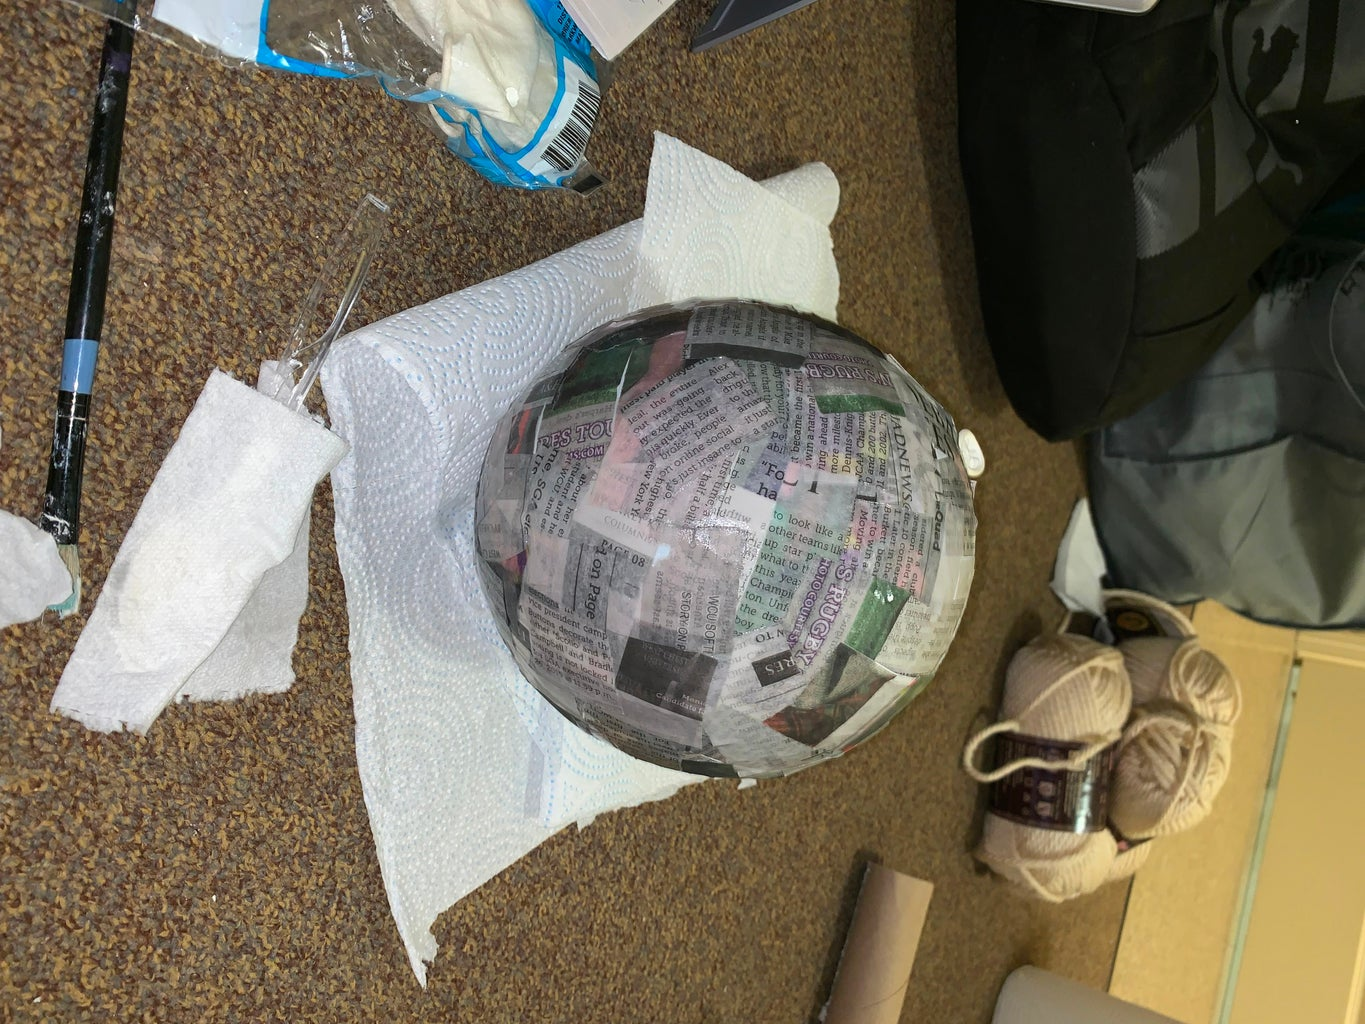 Cover Balloons With Newspaper